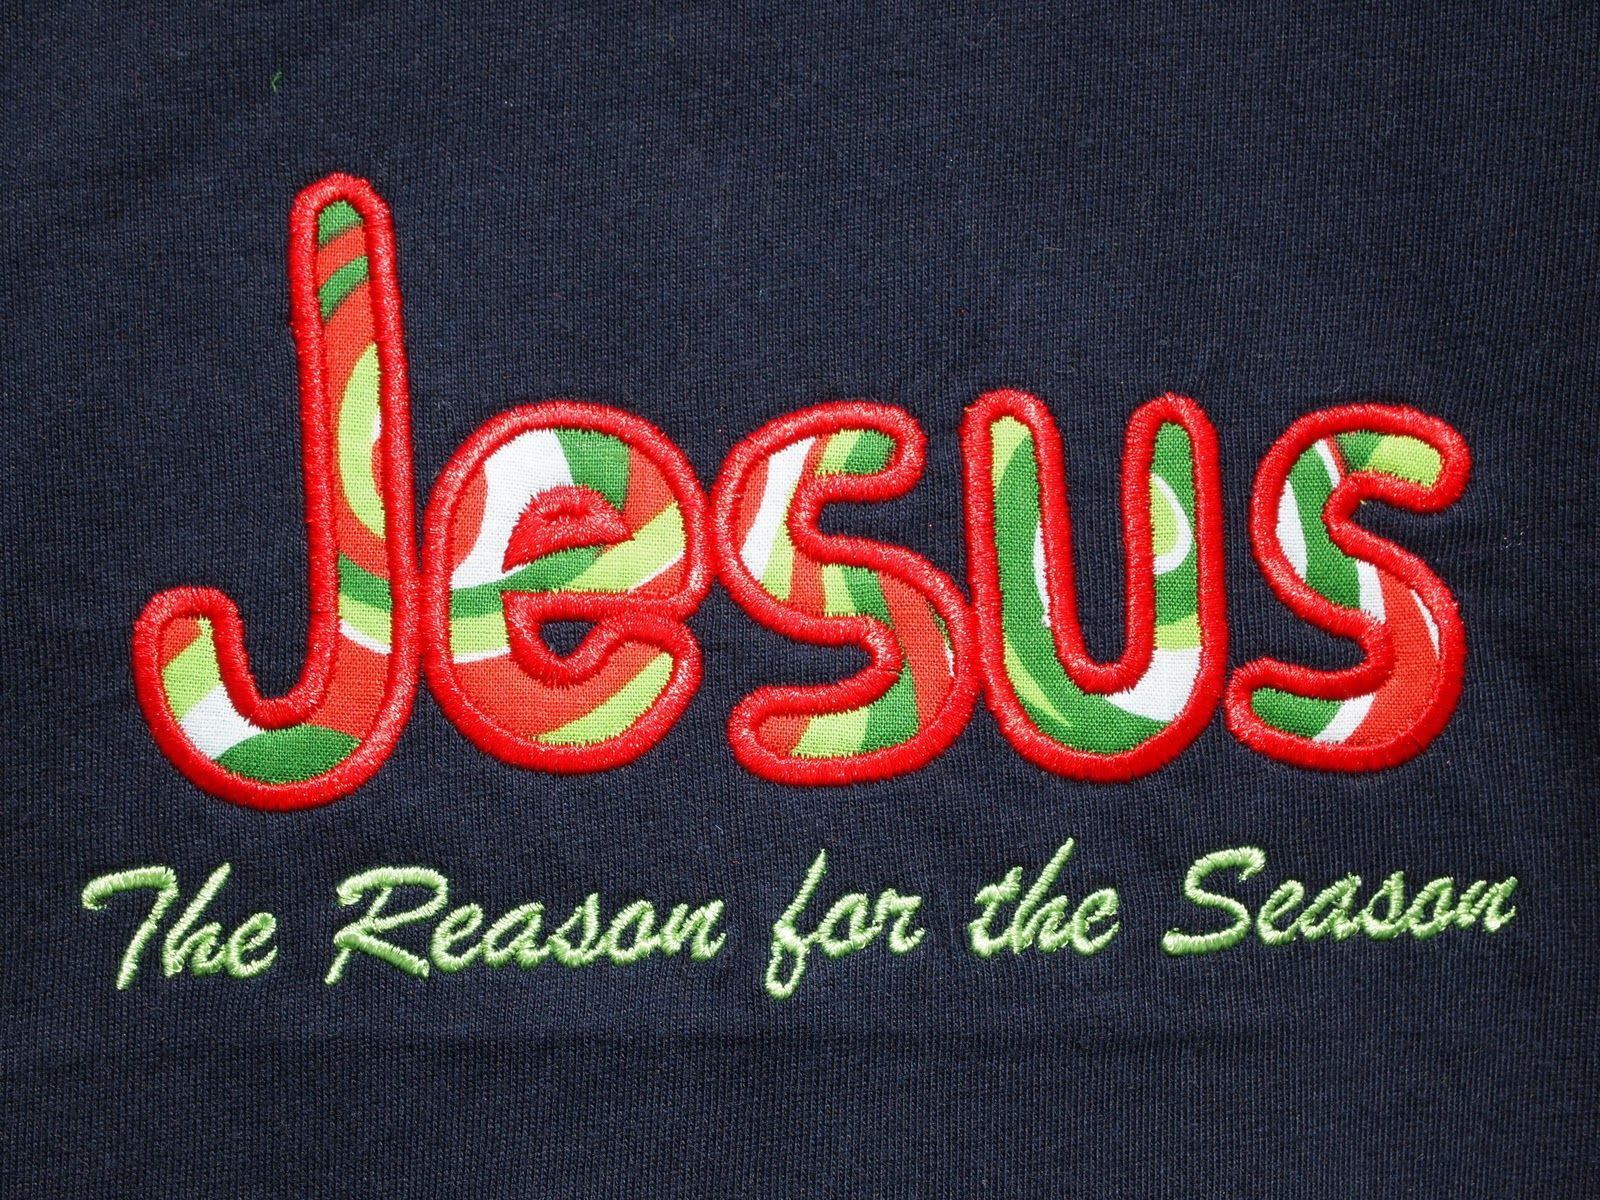 Pin by Gail Carlisle on Jesus is the Reason for the Season